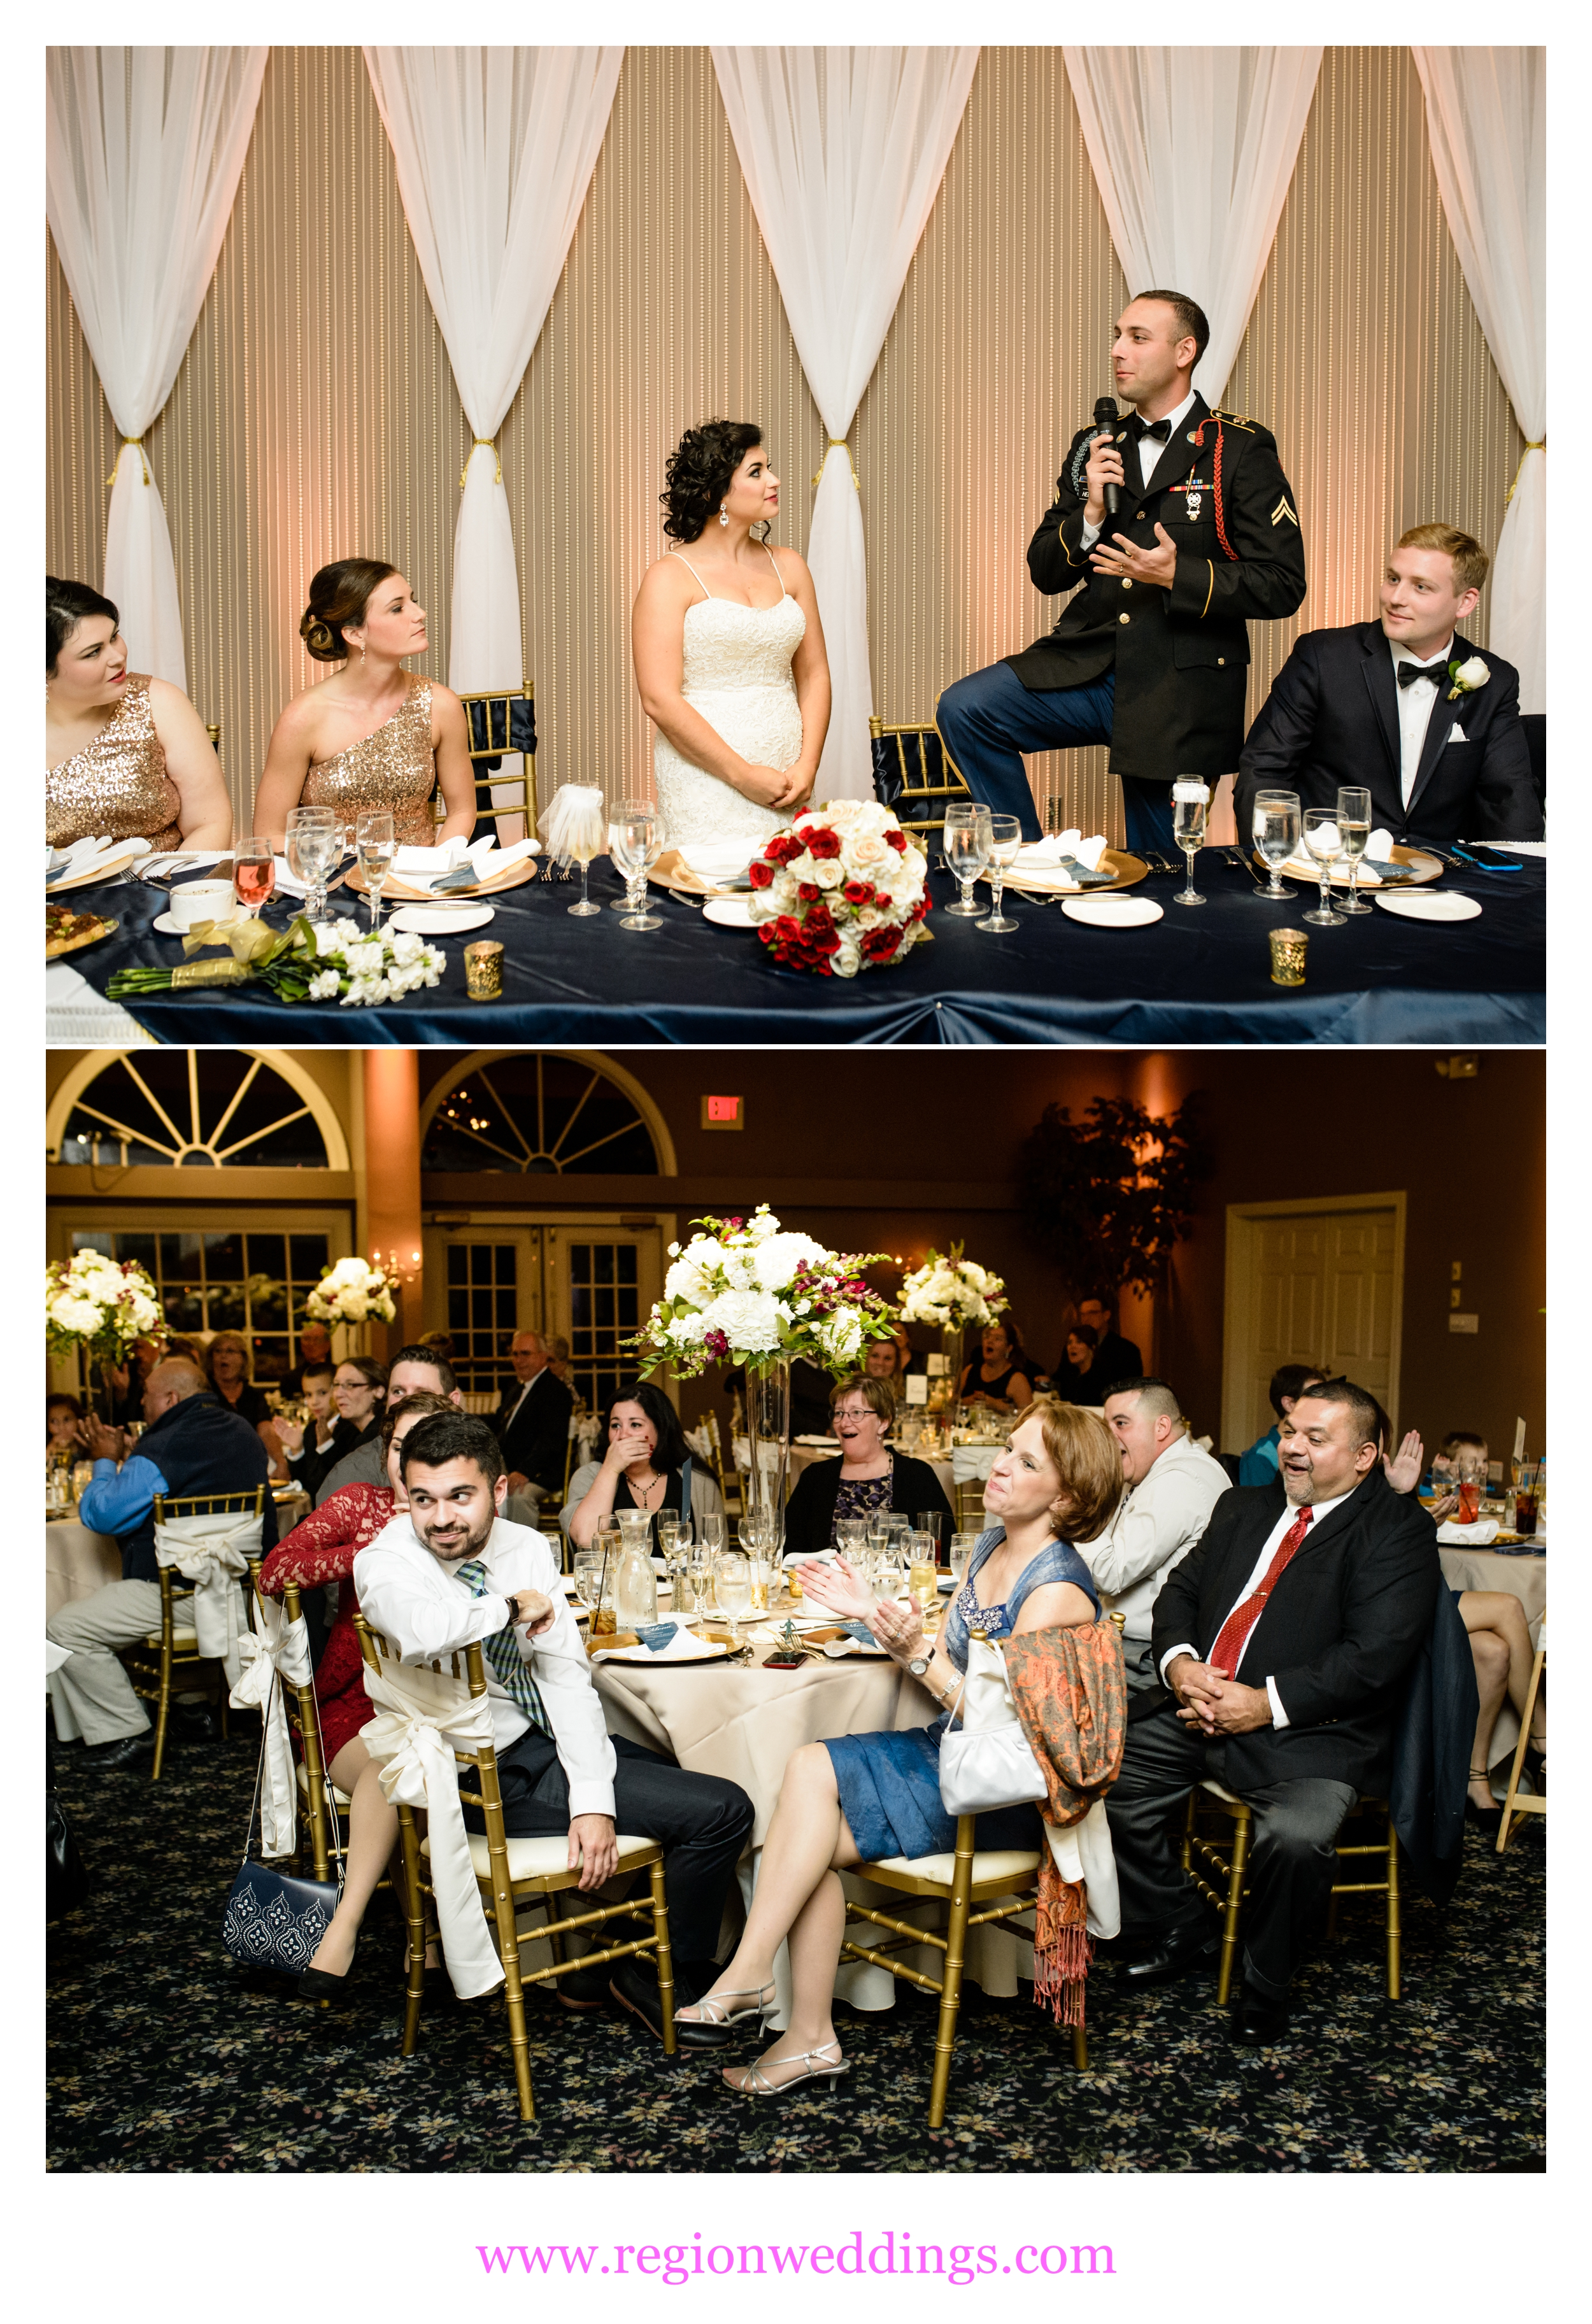 The bride and groom make a life announcement at their wedding reception at Aberdeen Manor.